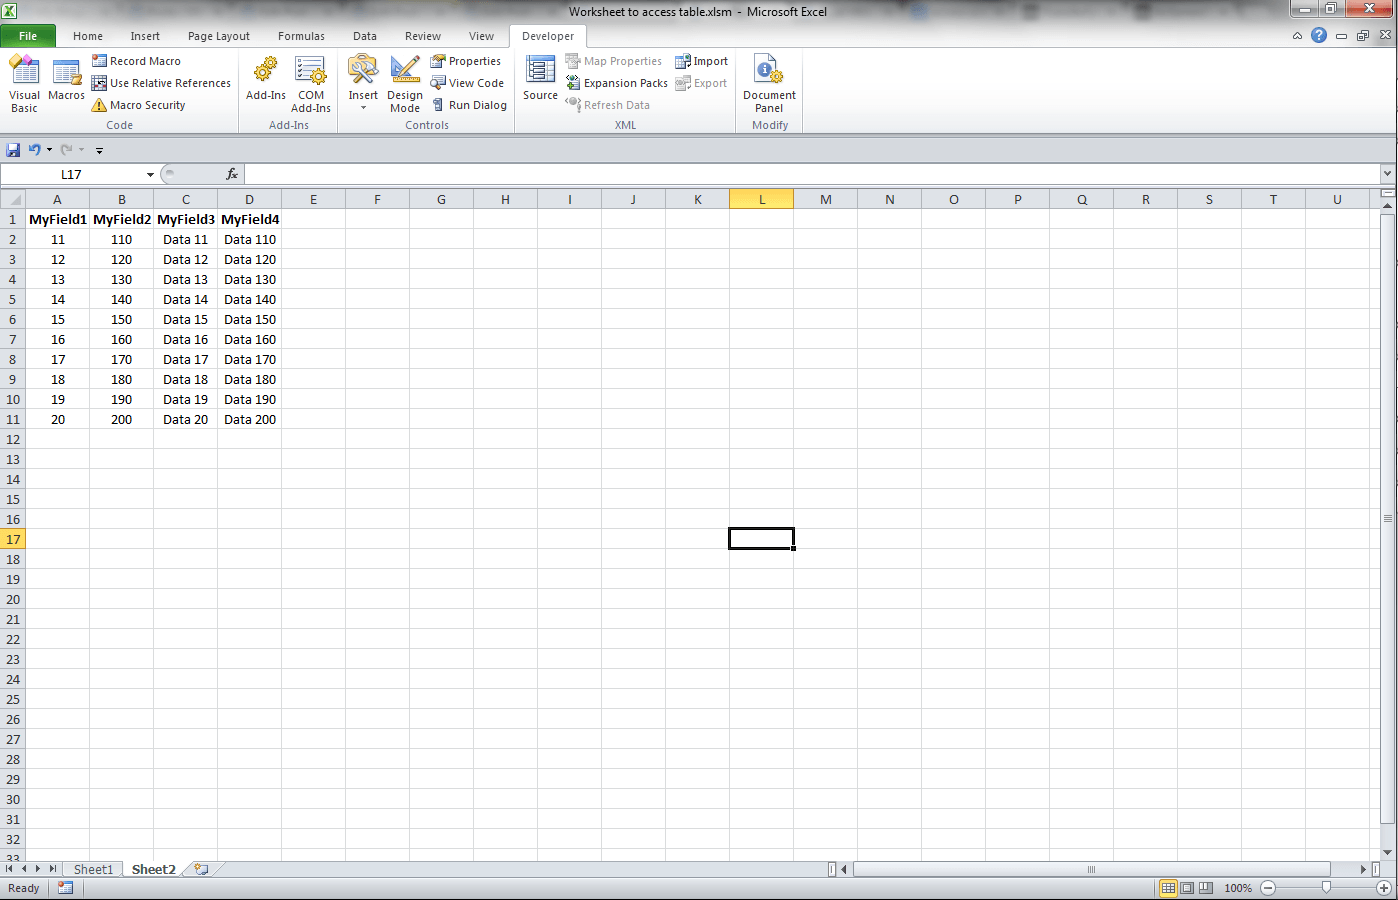 How is vba used in microsoft excel?